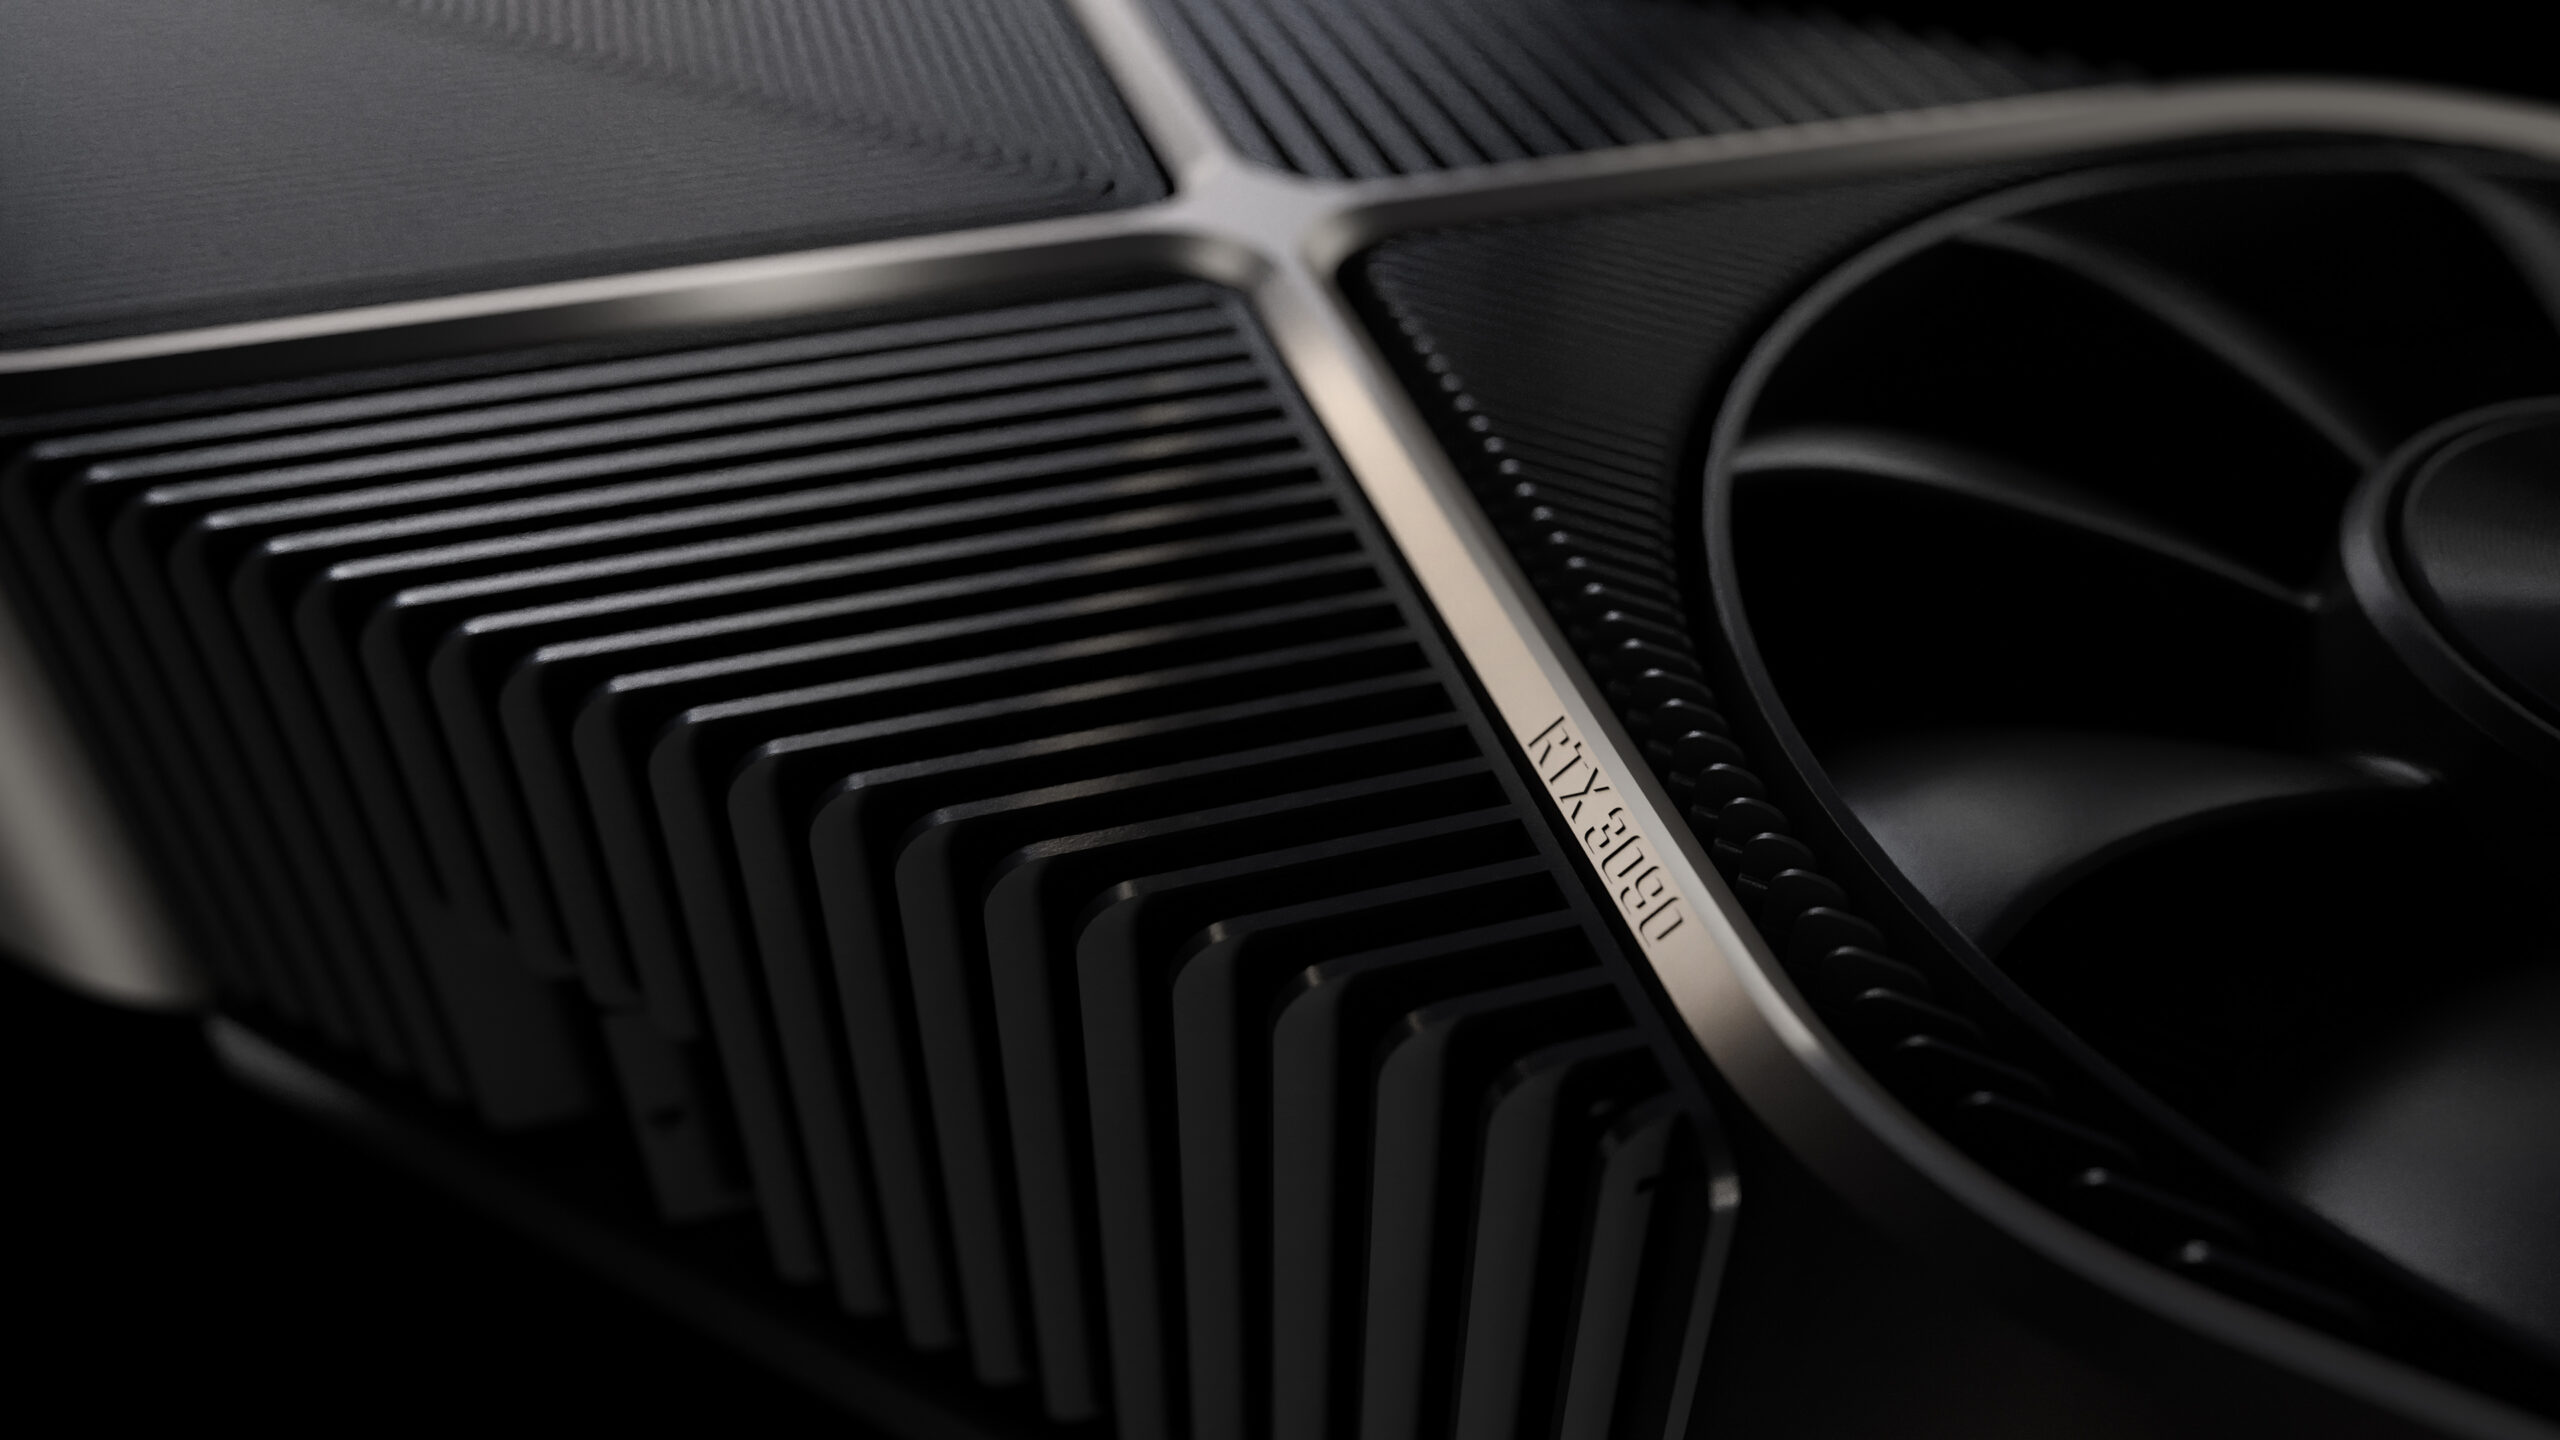 NVIDIA GeForce RTX 3080 Ti Rumored To Get 12 GB GDDR6X Memory Rated at 19 Gbps, Will Feature Hash Rate Limiter To Counter Crypto Miners - Wccftech